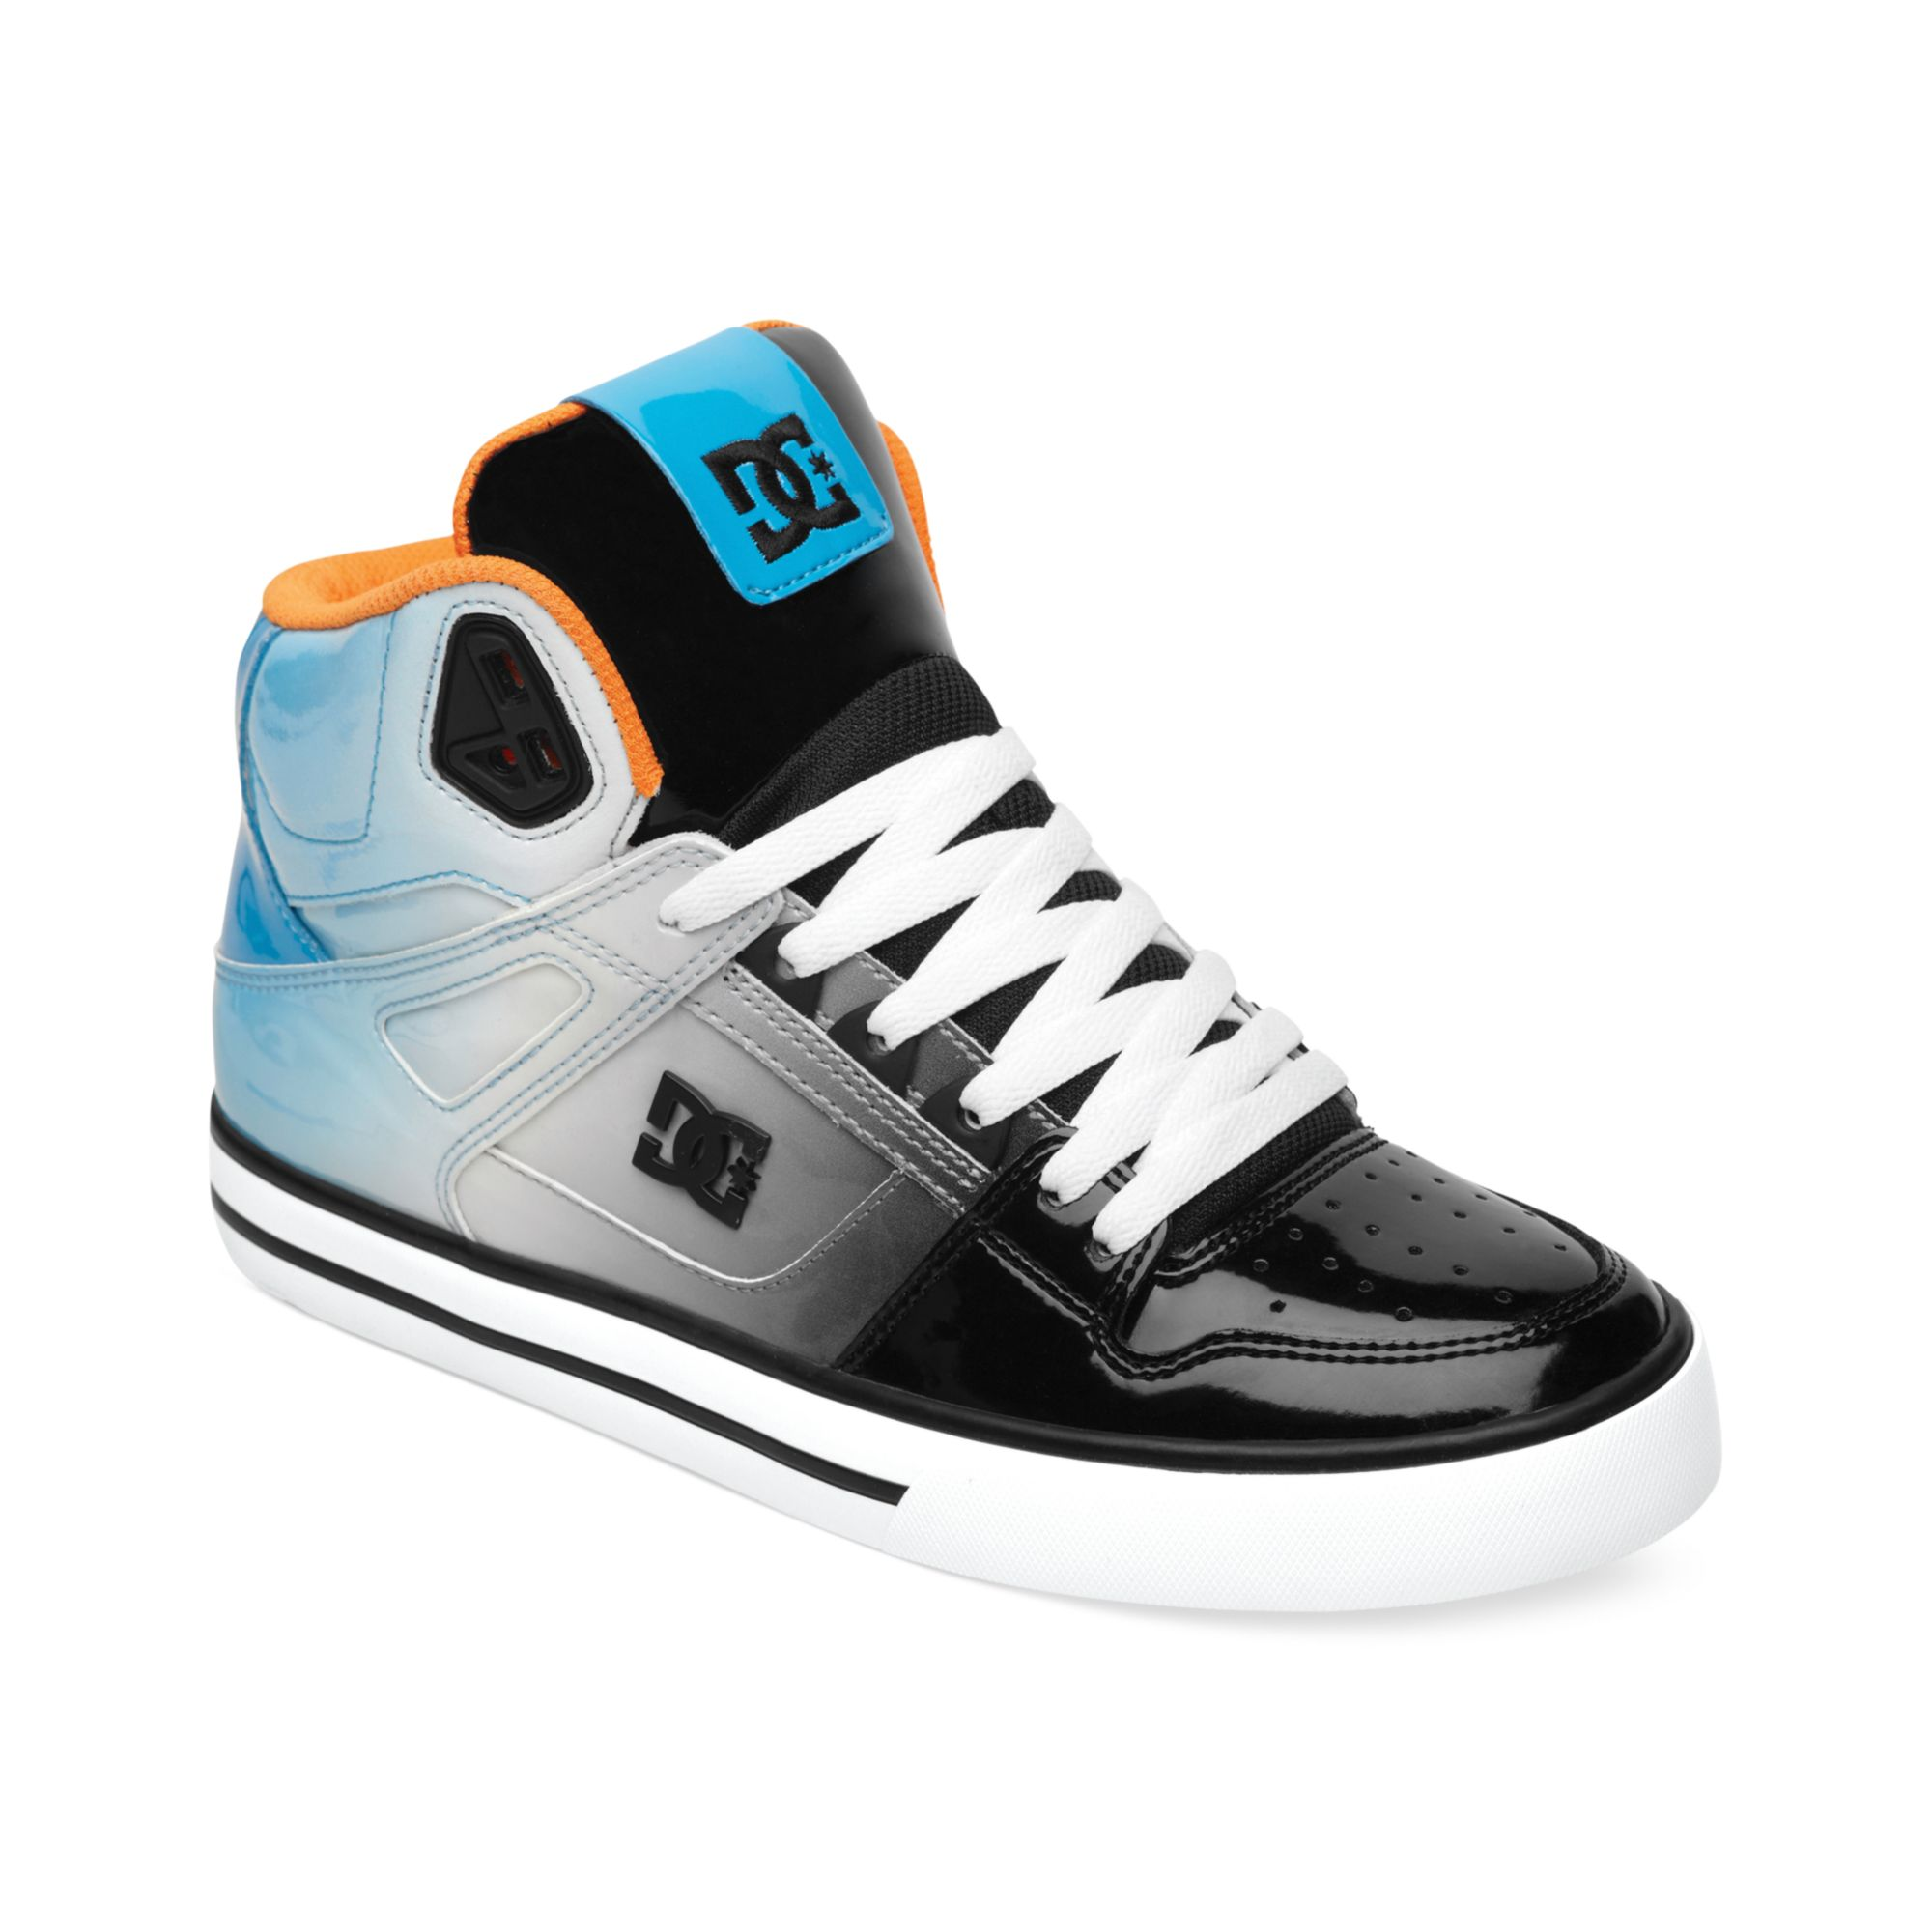 1507161da866 DC Shoes Spartan Hi Wc Se Sneakers in Blue for Men - Lyst